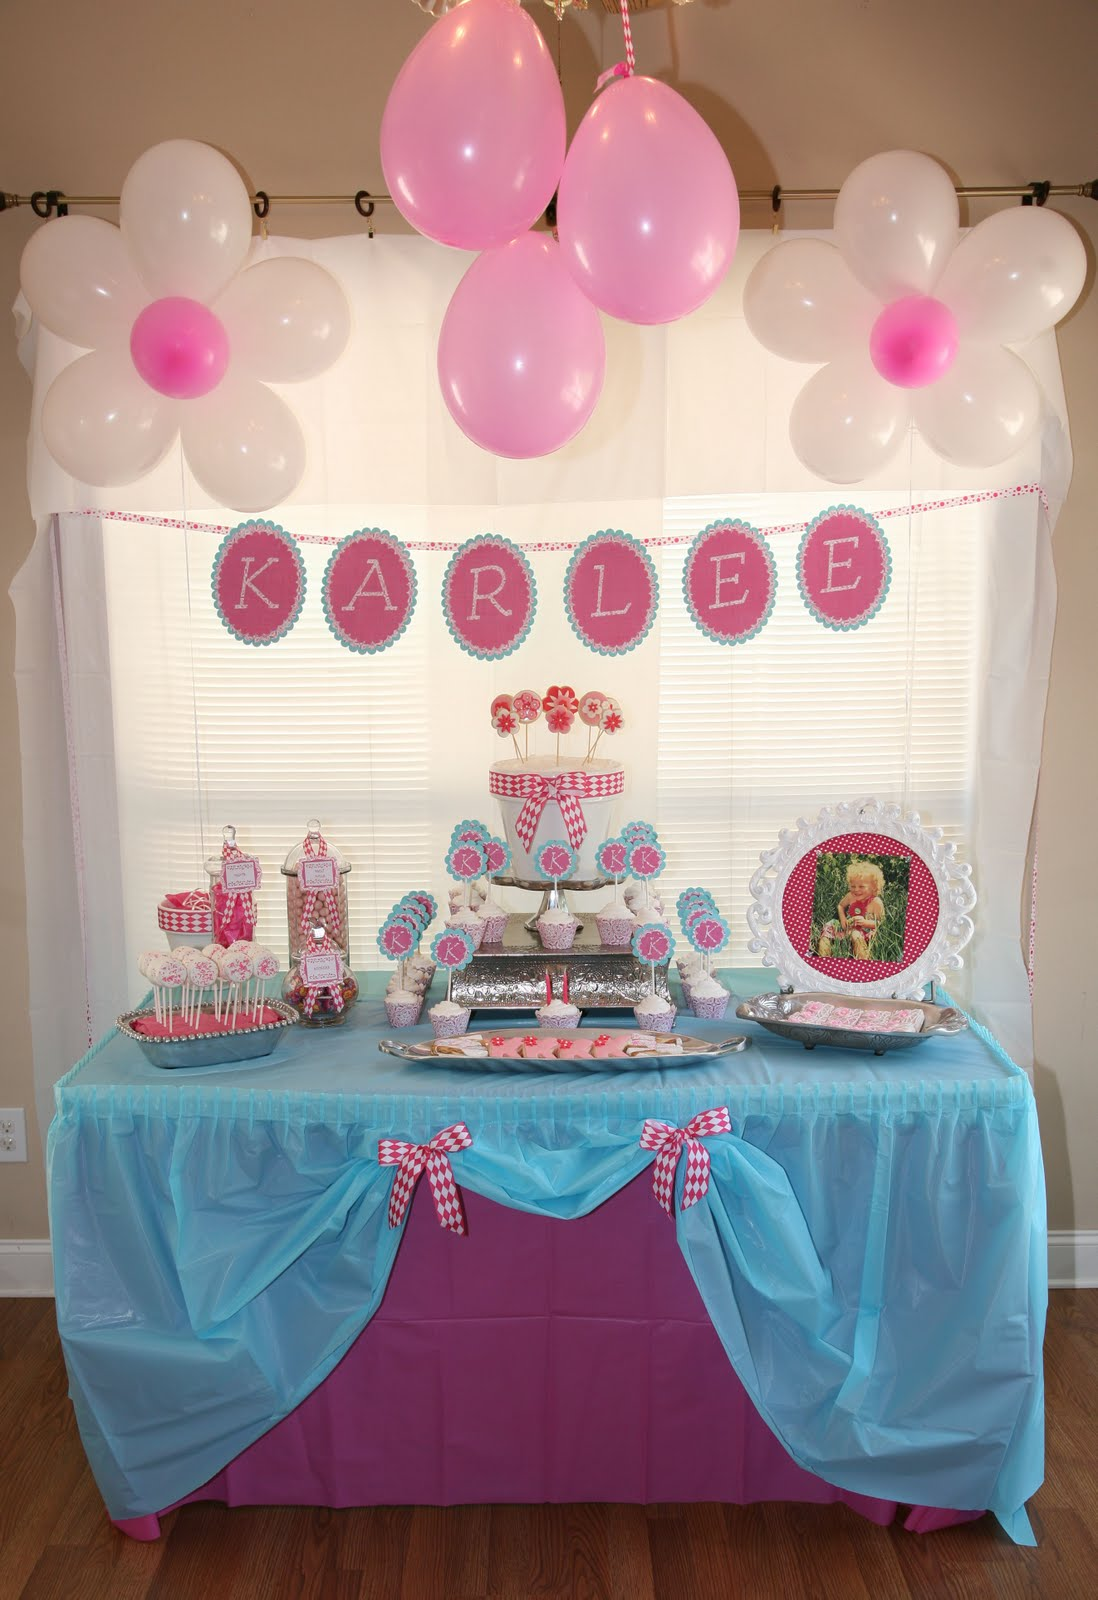 homemade baby shower decorations for a girl design the theme around